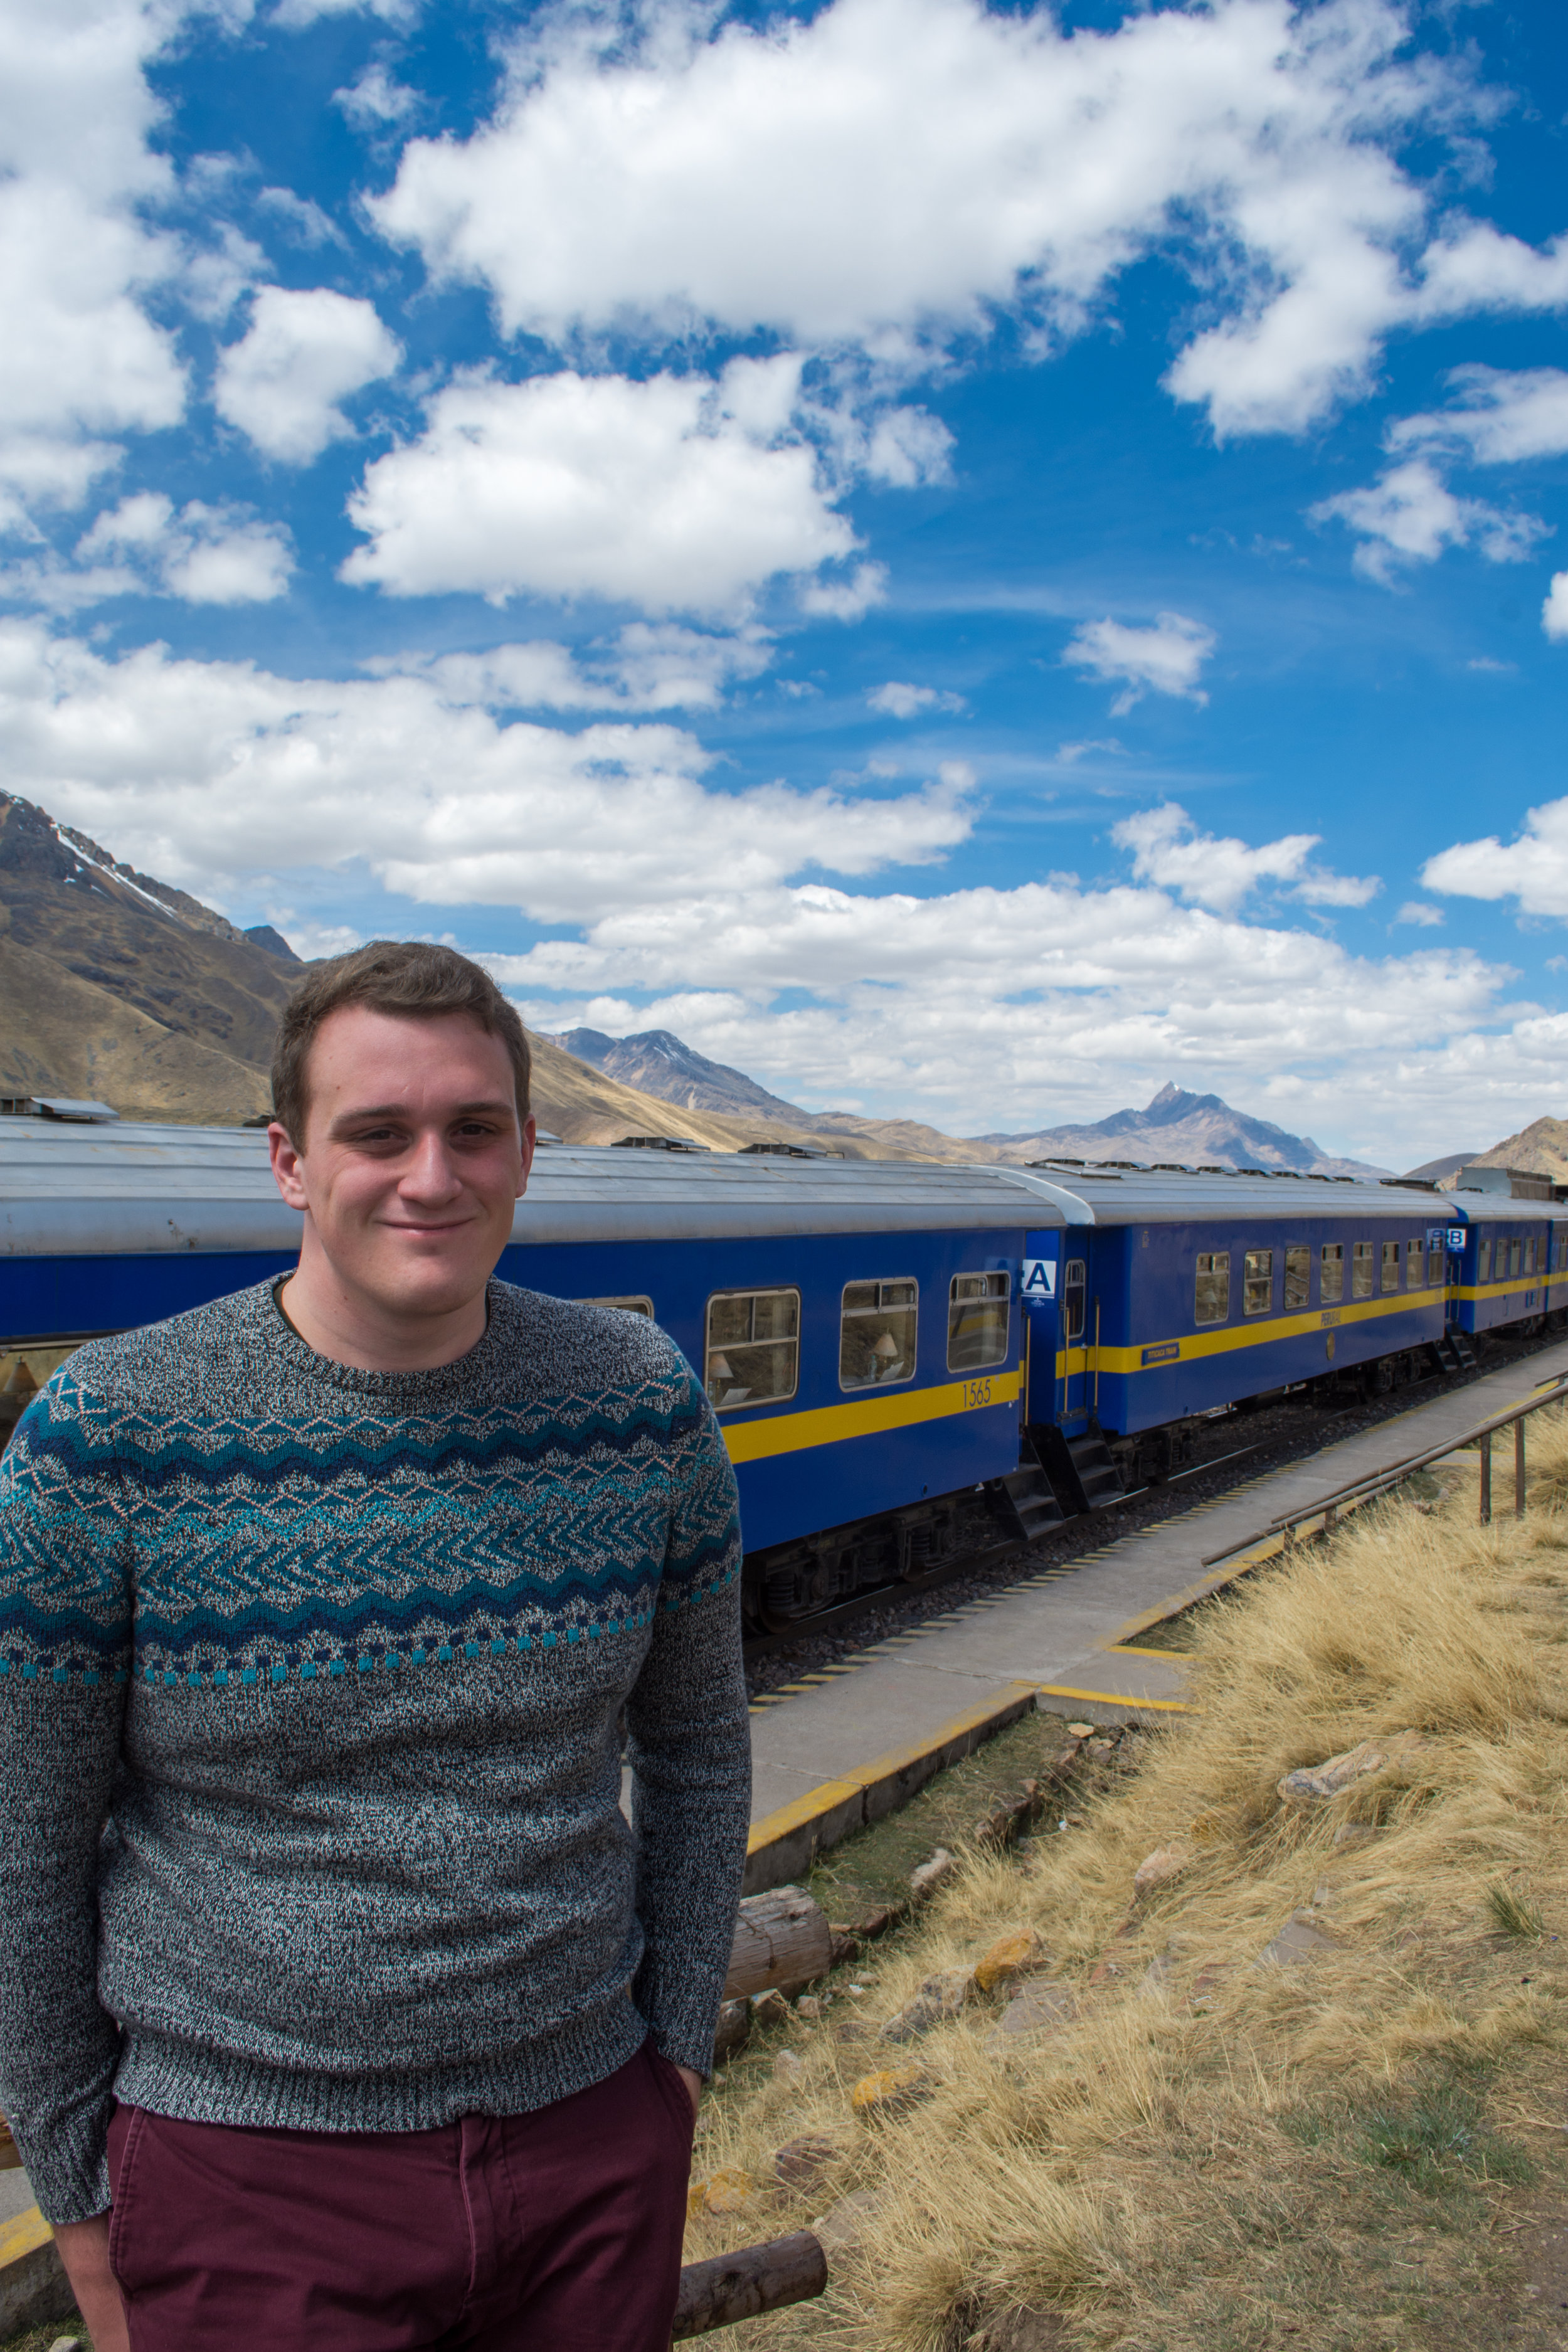 Train through the Andes Mountains